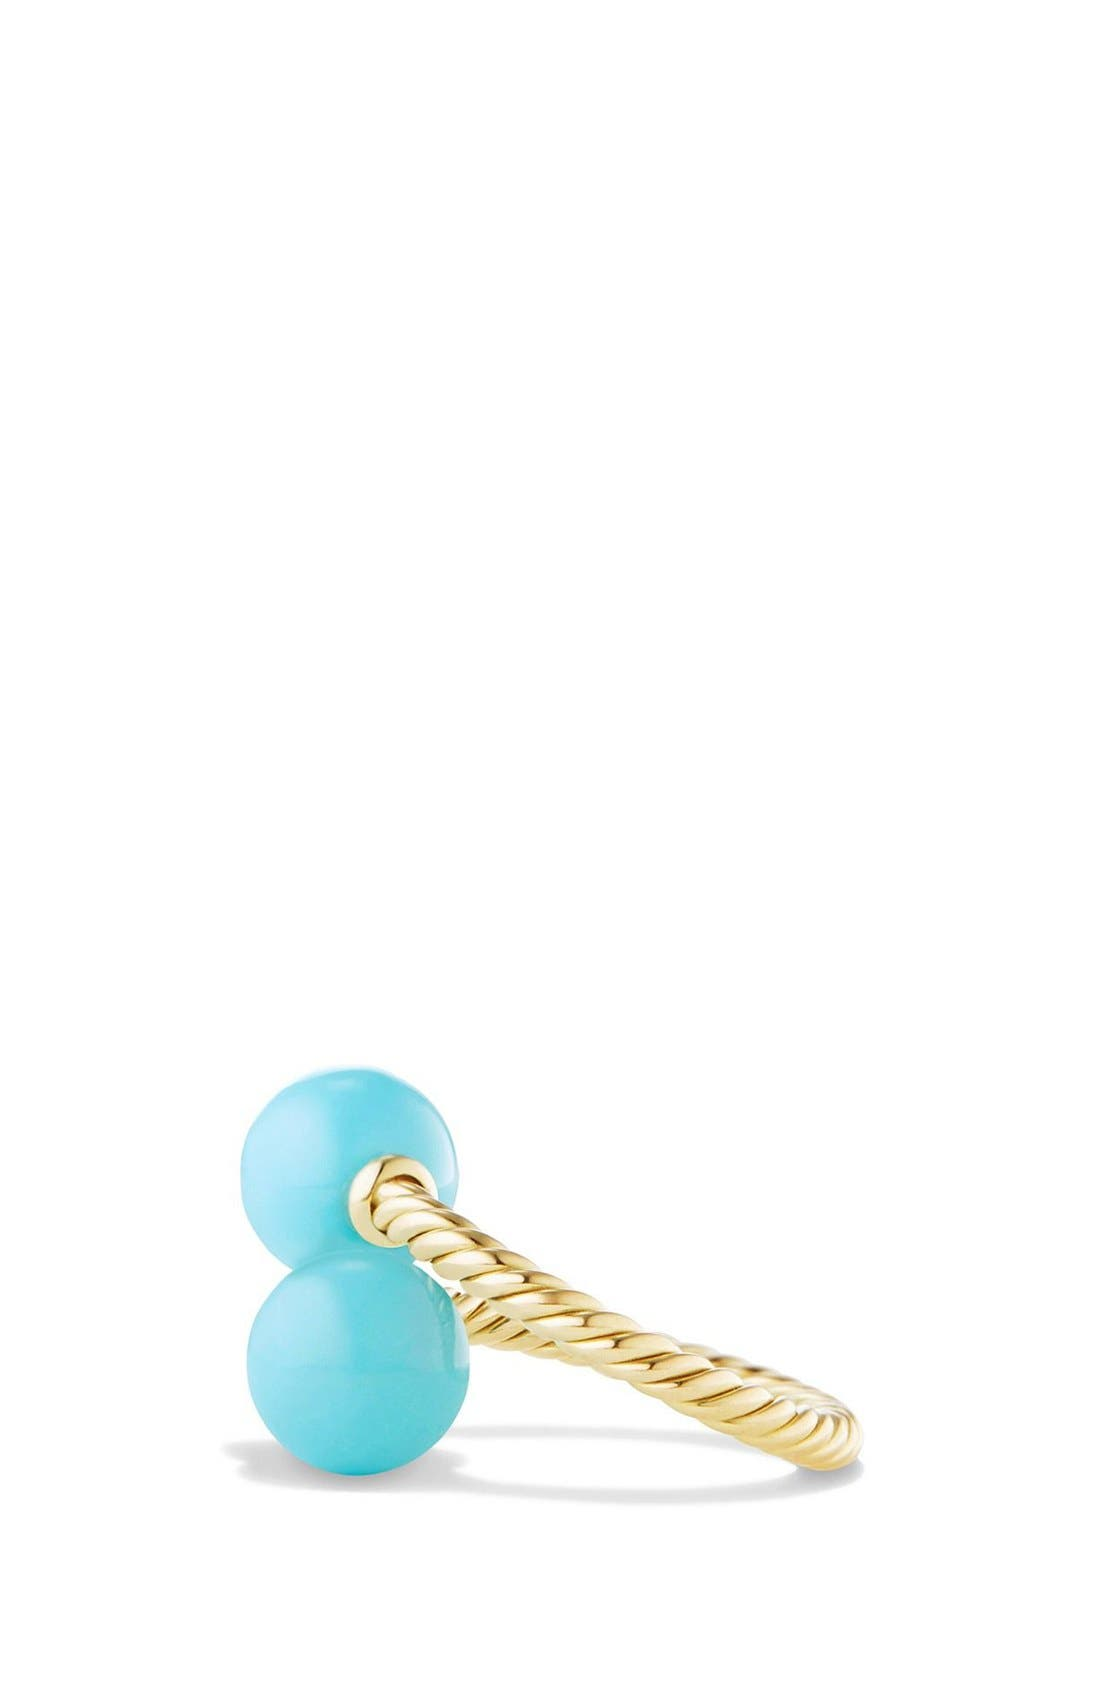 DAVID YURMAN, 'Solari' Bead Ring with Turquoise in 18K Gold, Alternate thumbnail 2, color, TURQUOISE